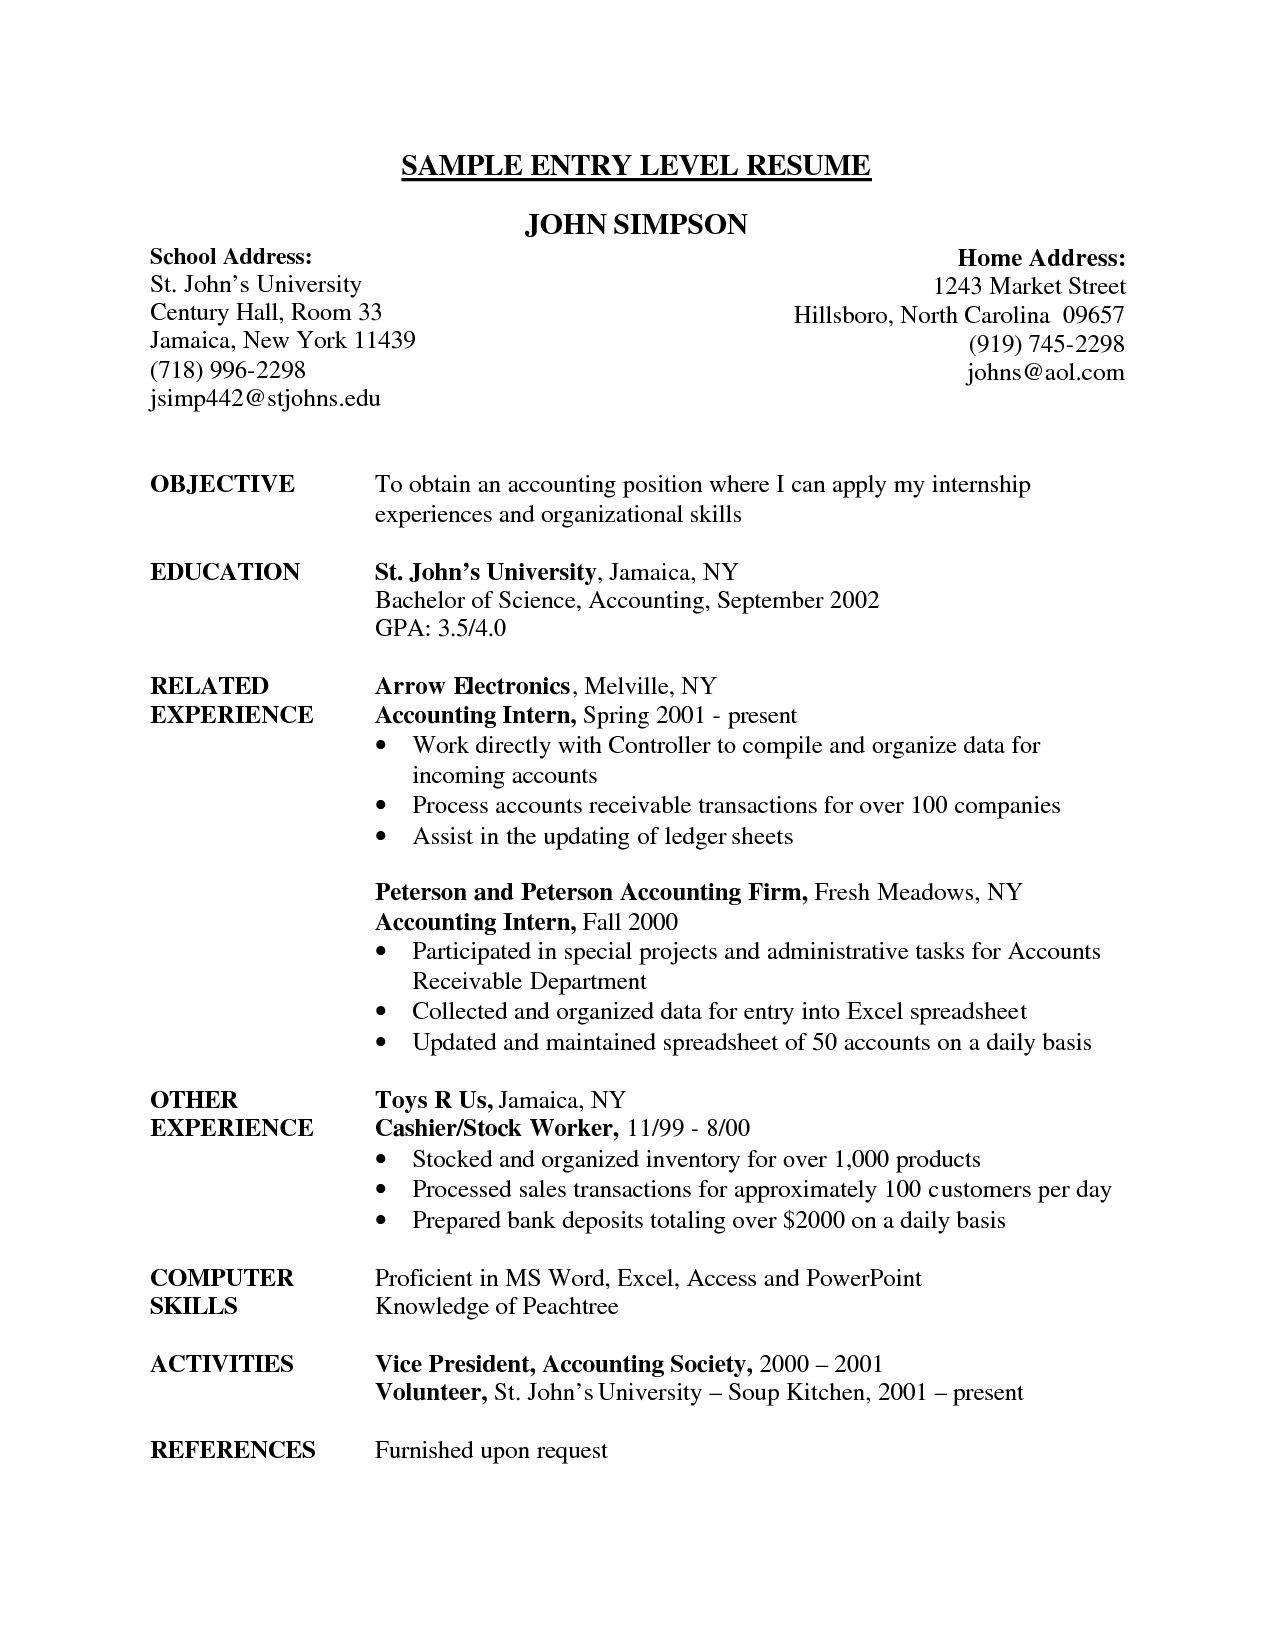 Career Objective Statement Examples Delectable Resume Examples Entry Level  Resume Examples  Pinterest  Resume .